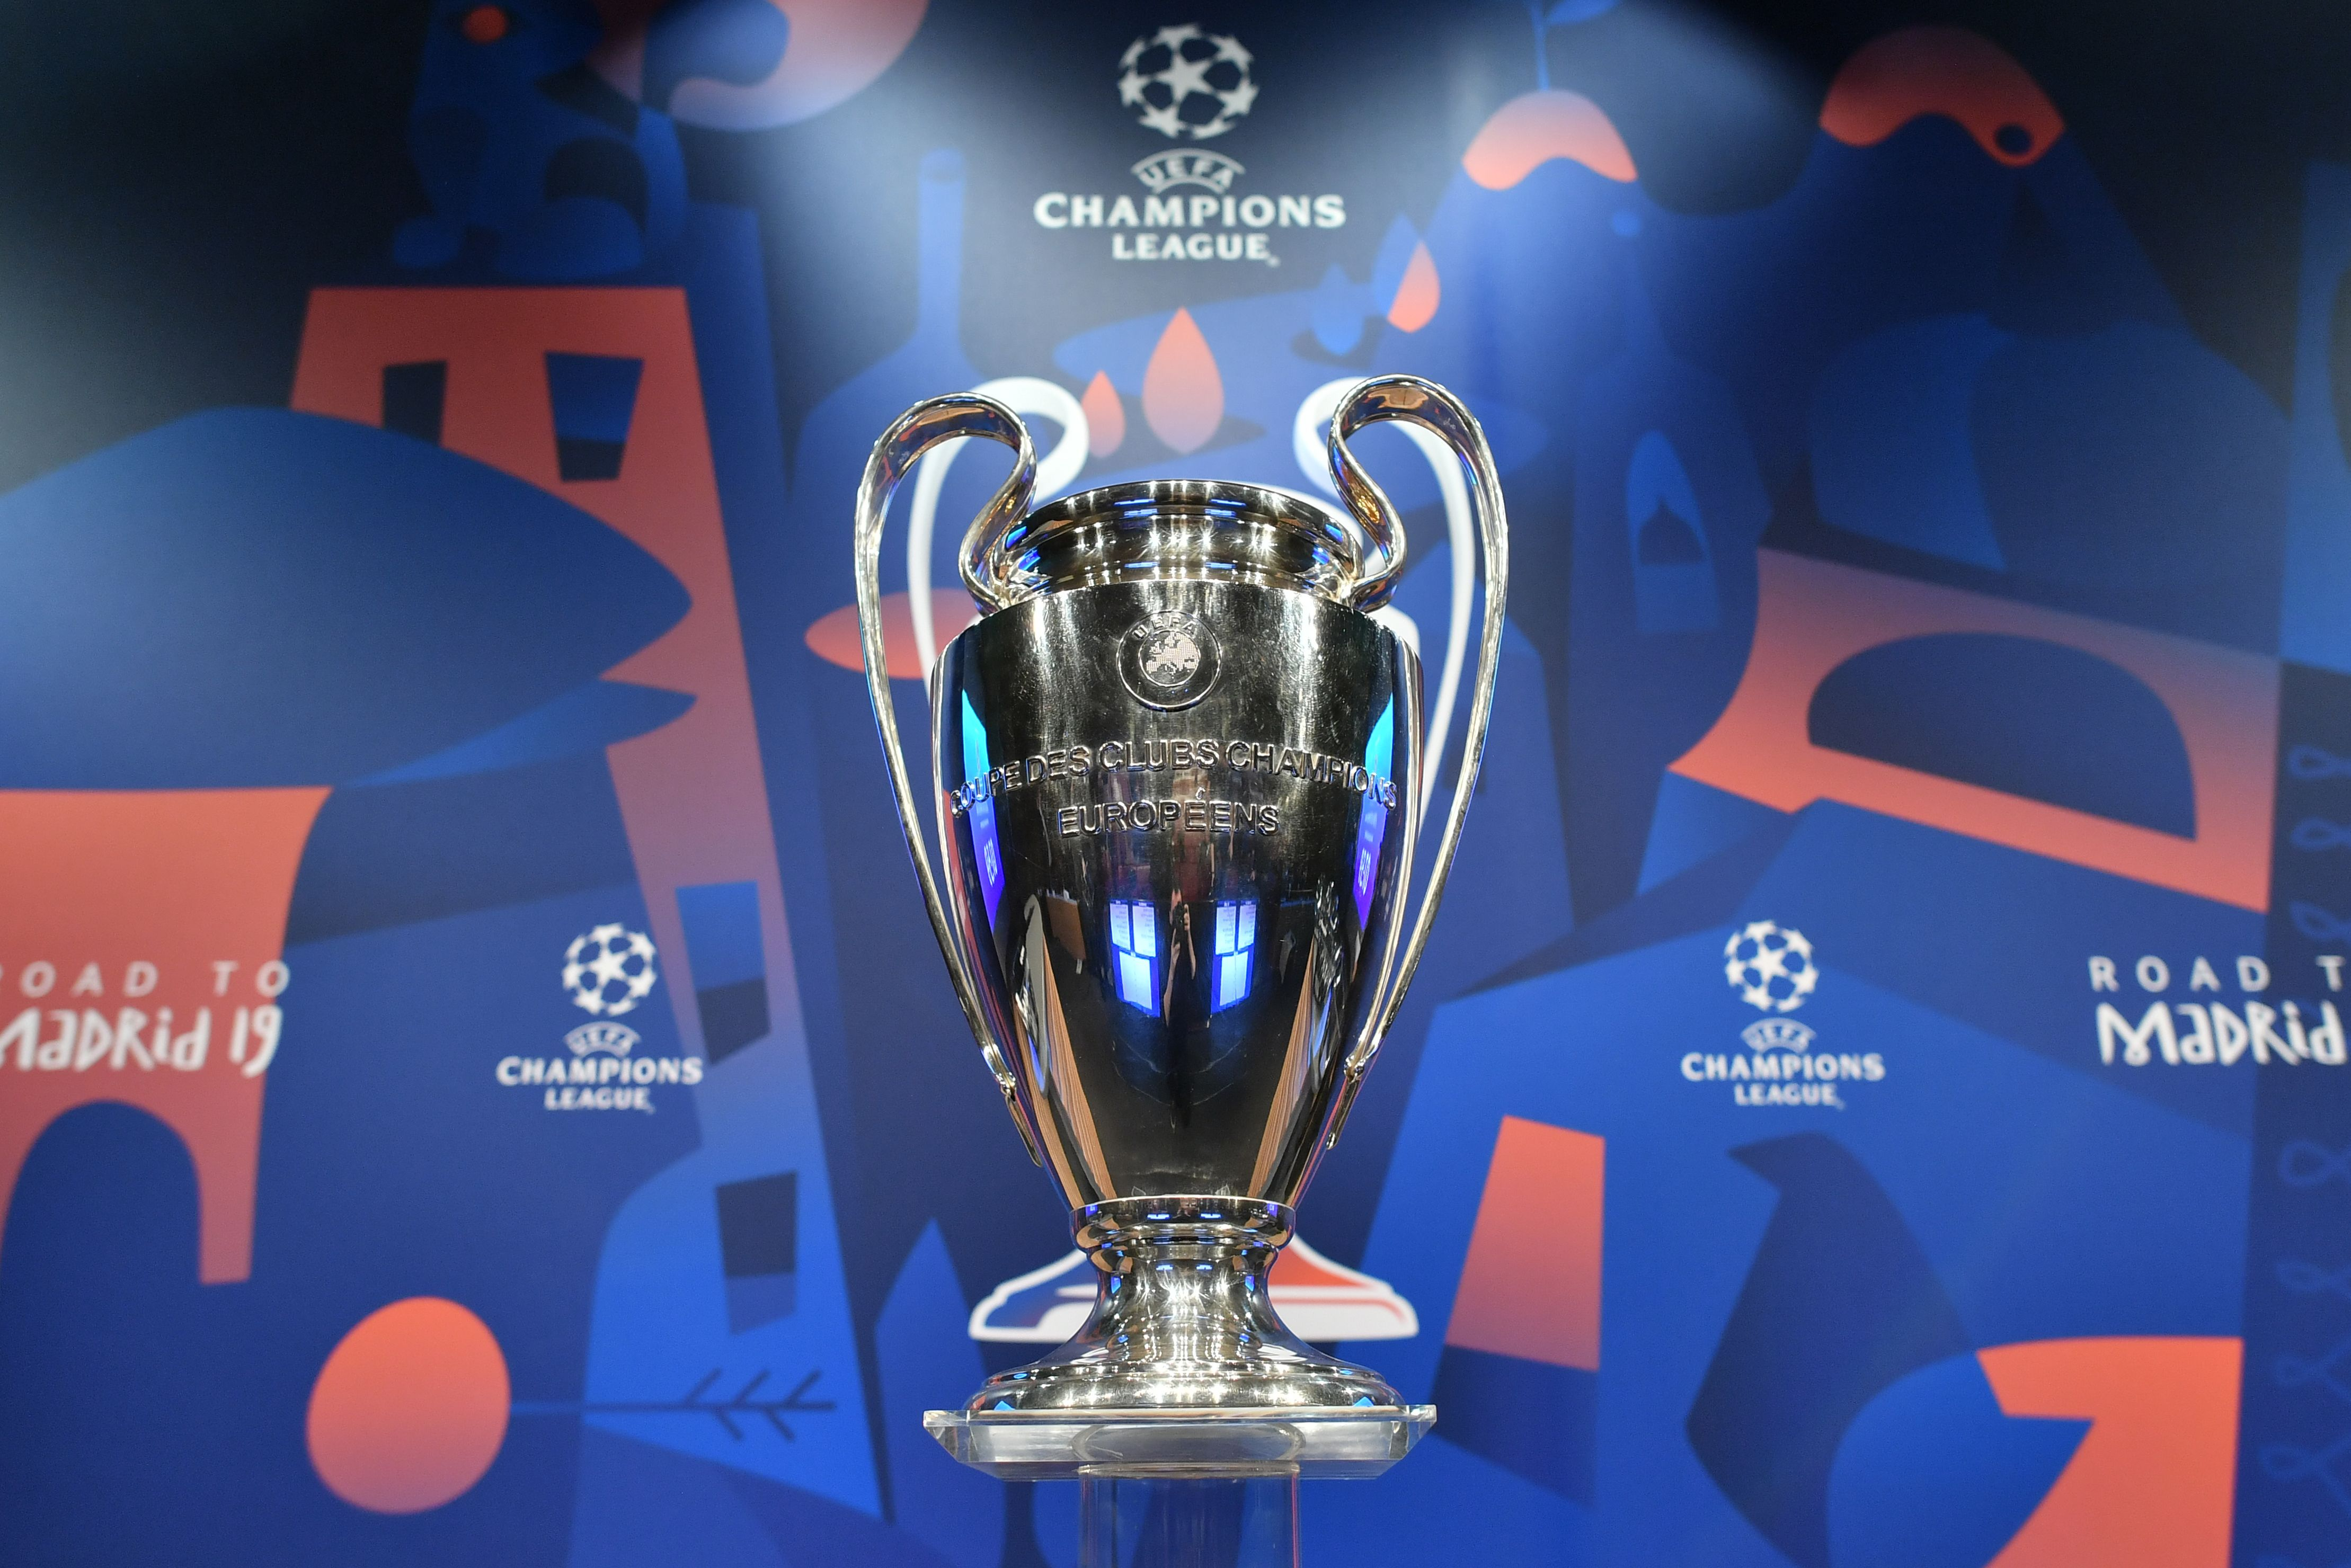 UEFA Champions League trophy.